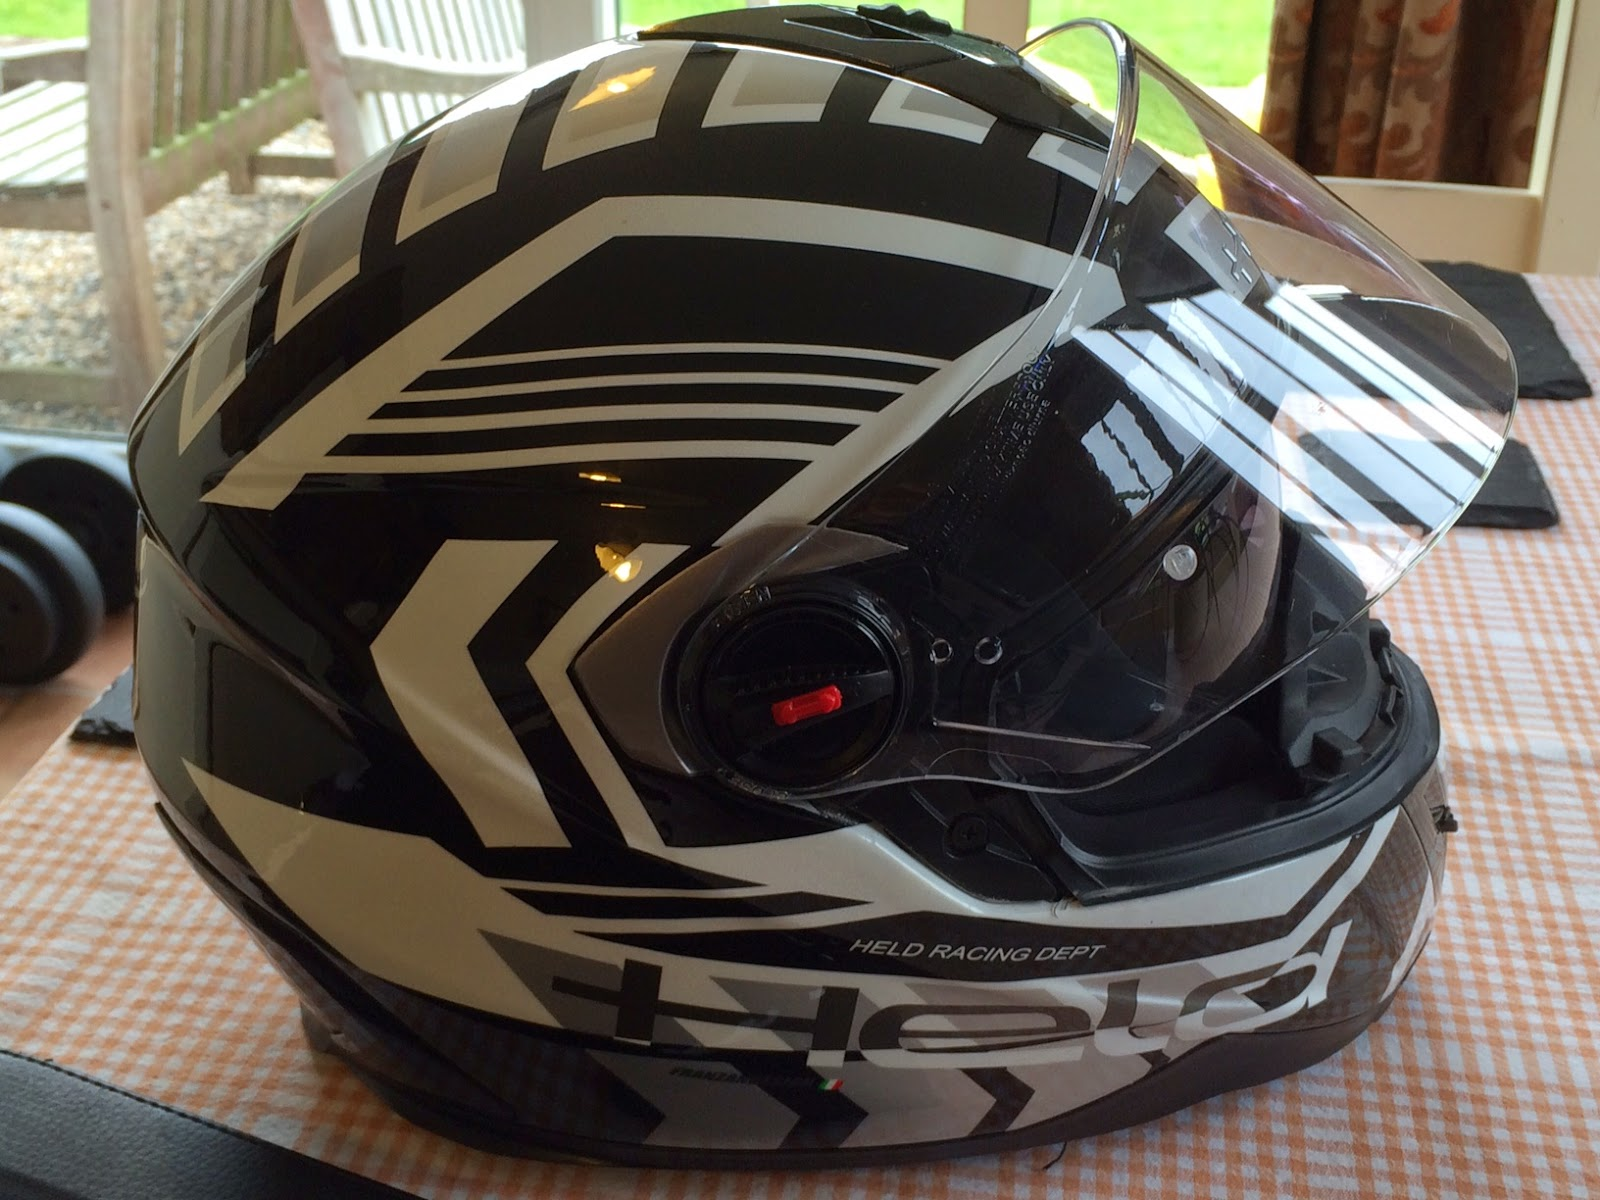 Held make great value motorcycle helmets